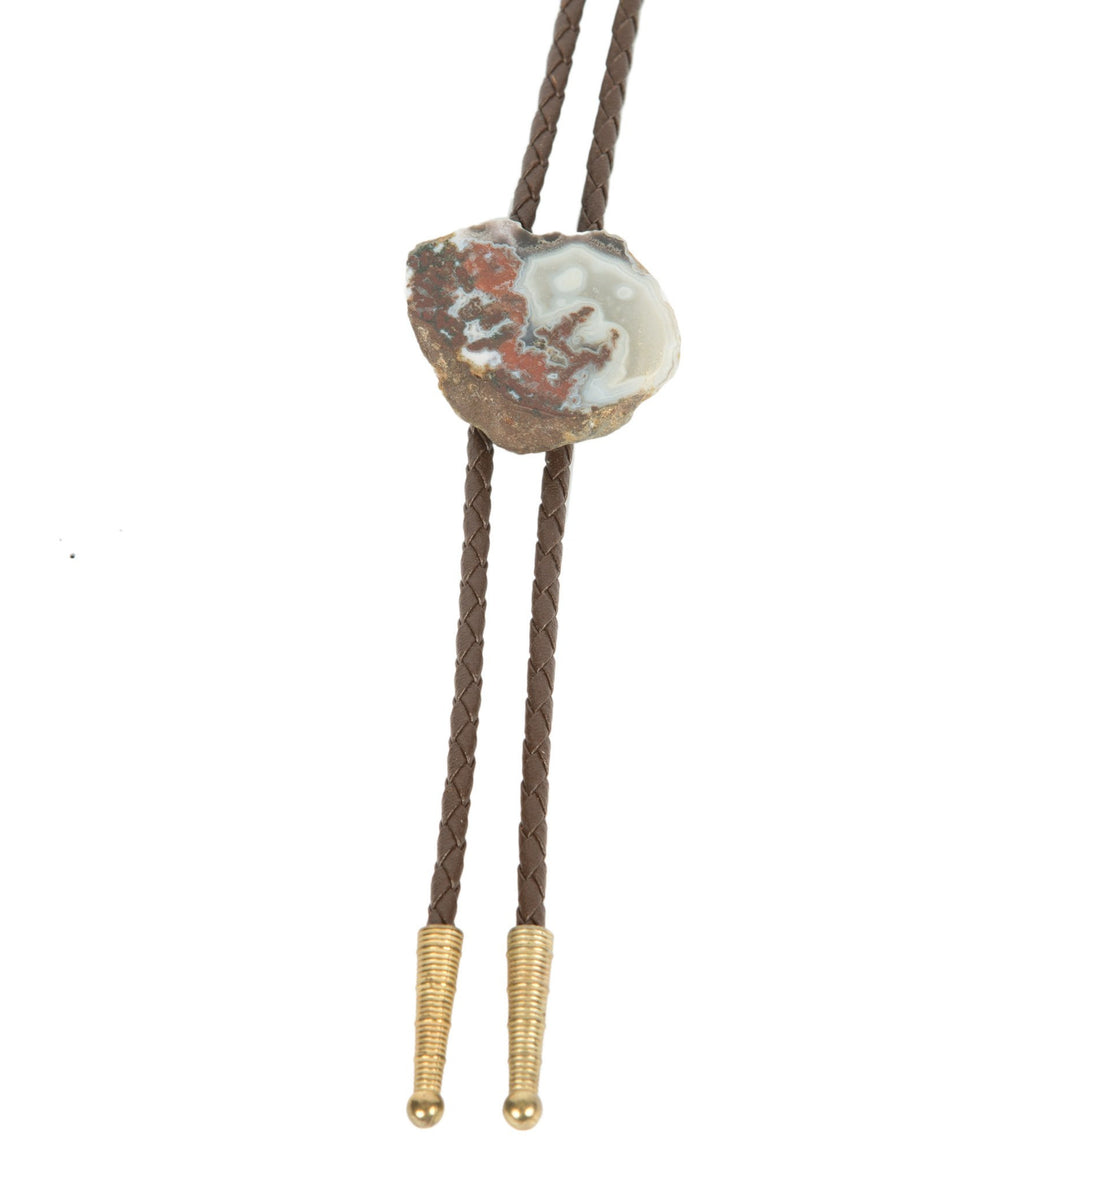 Vintage Leather and Stone Bolo Tie - Vintage - Iron and Resin